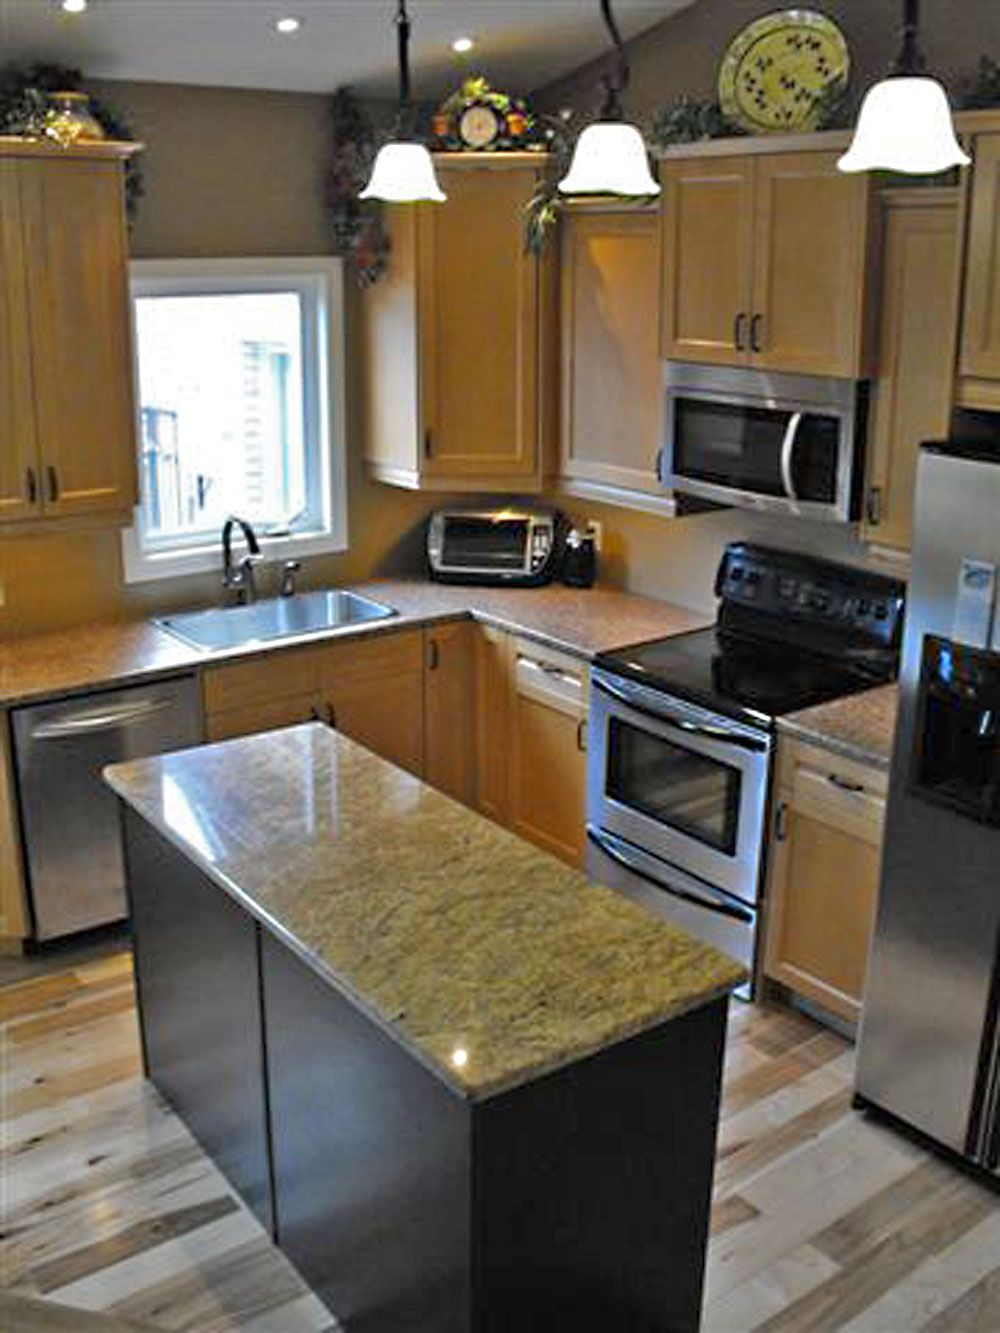 Raised ranch before and after raised ranch kitchen remodel for 70s kitchen remodel ideas